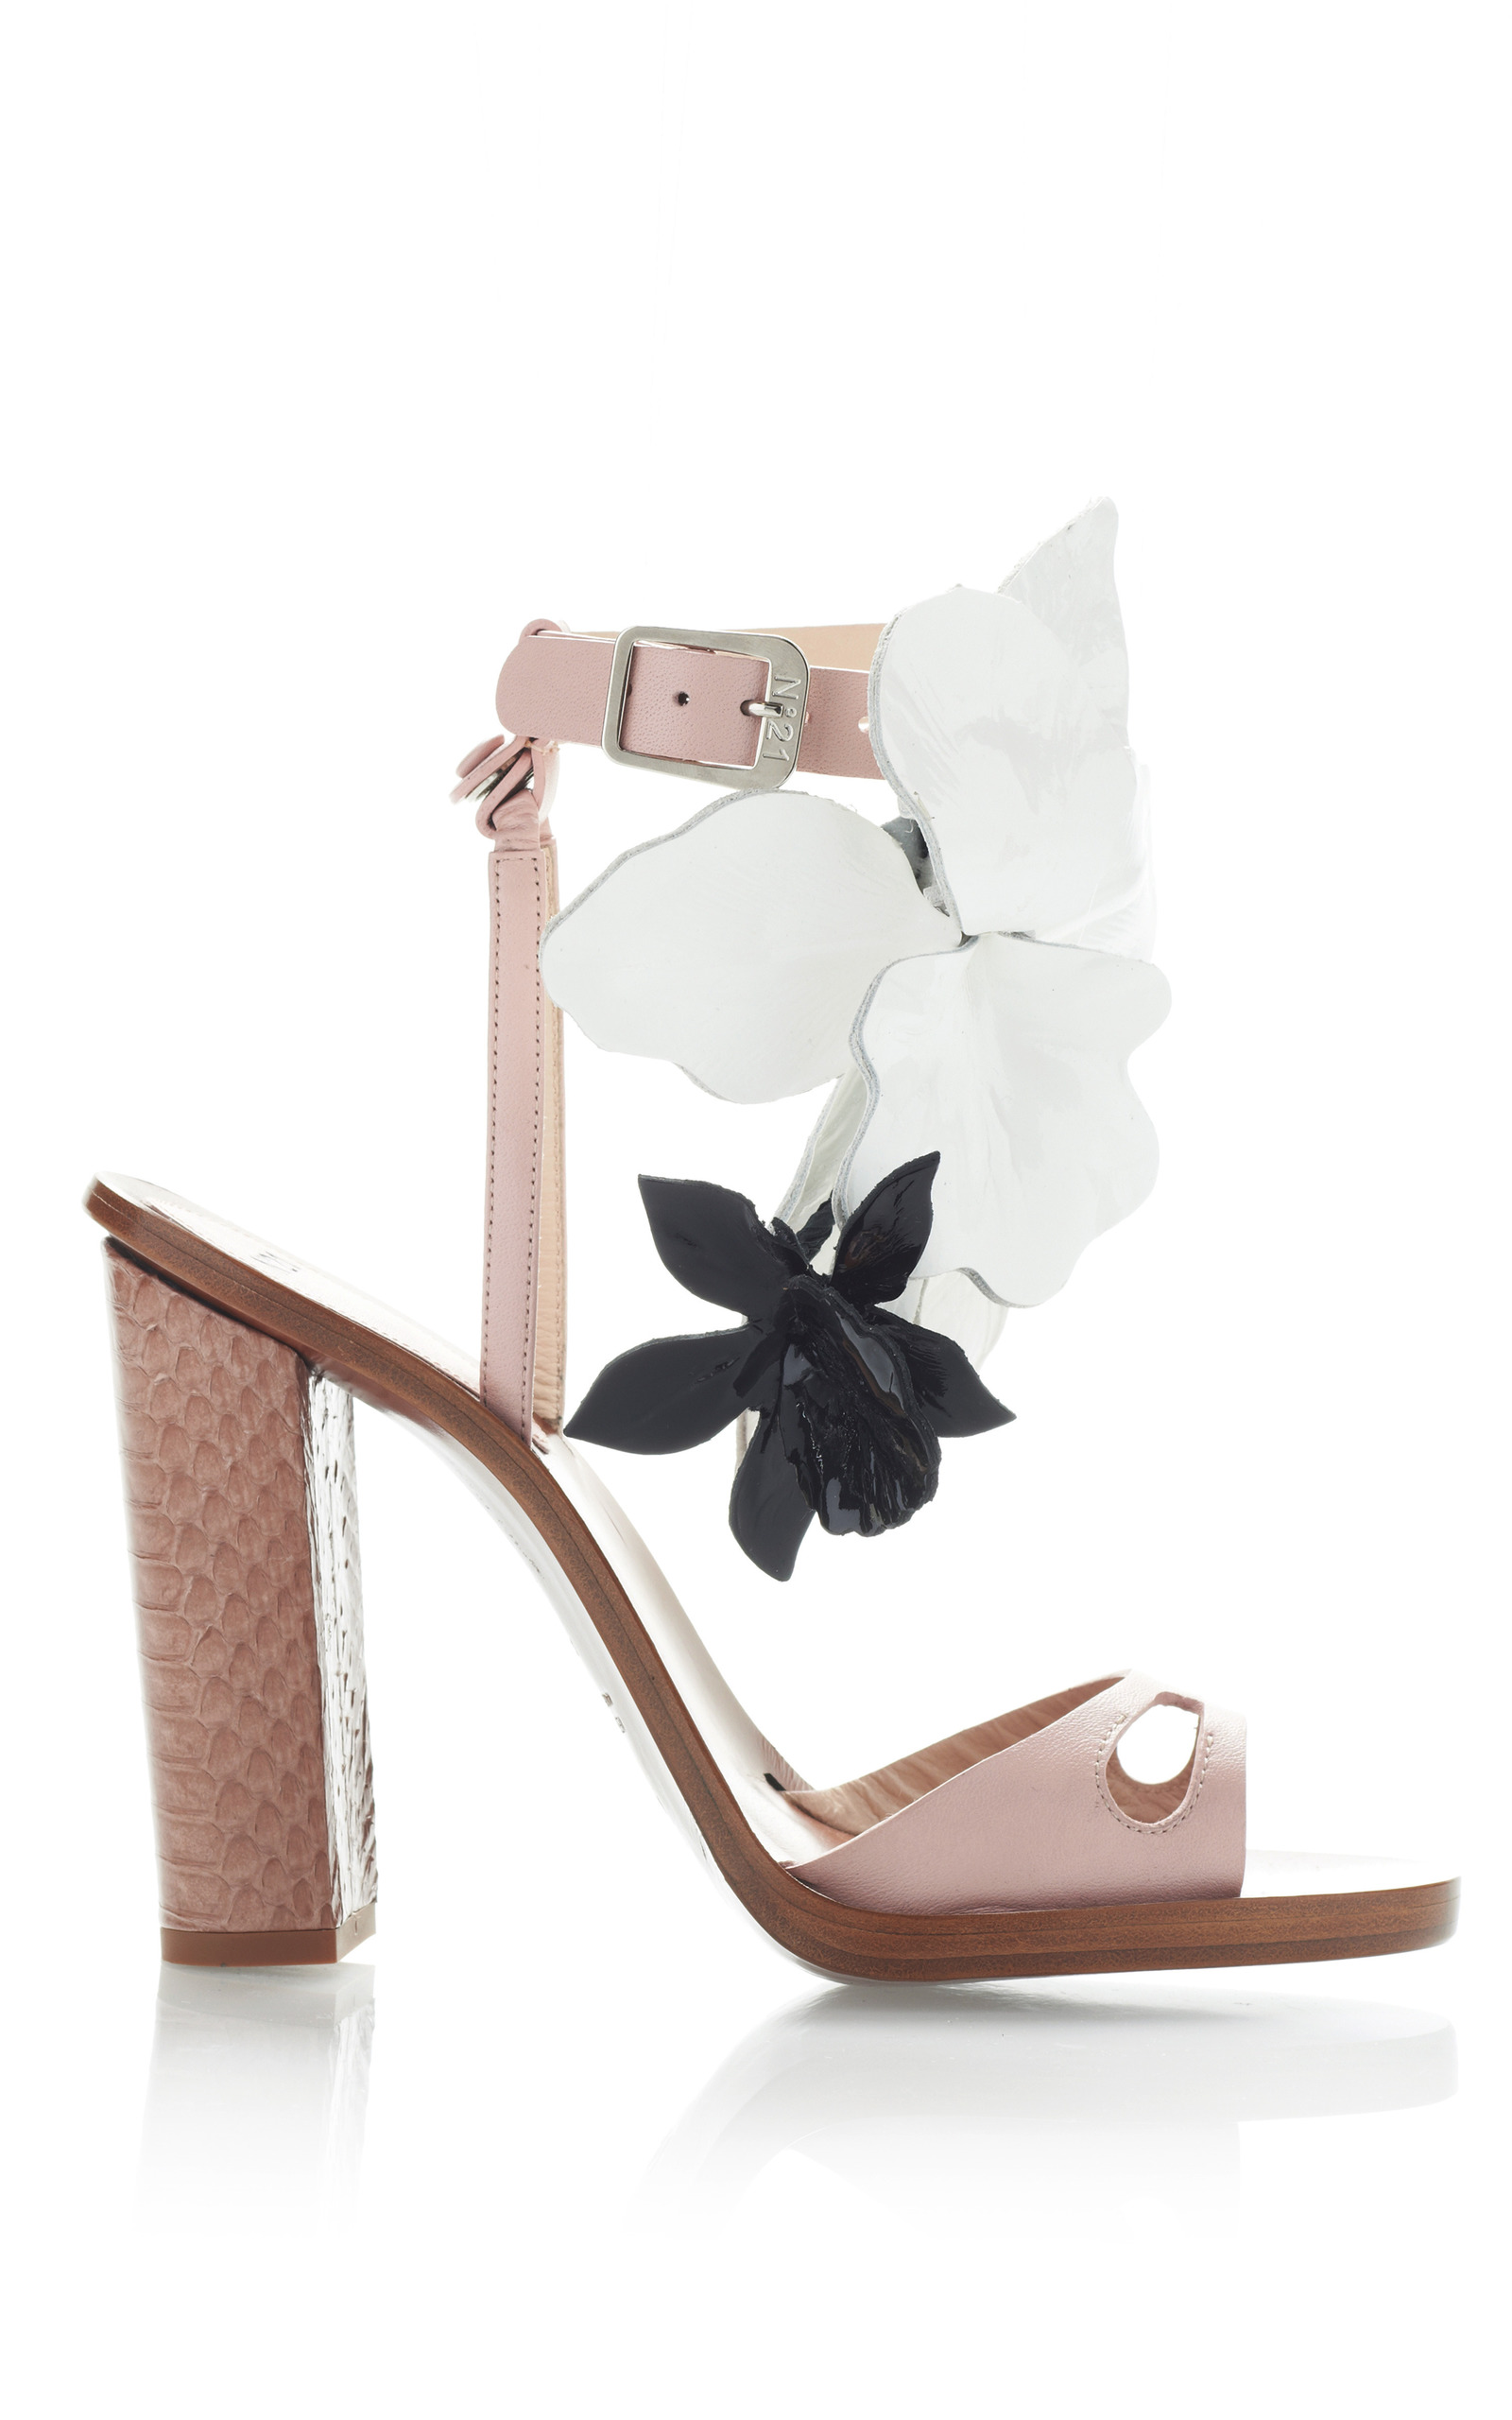 Blush Pink High Heel Sandals With Black And White Moda